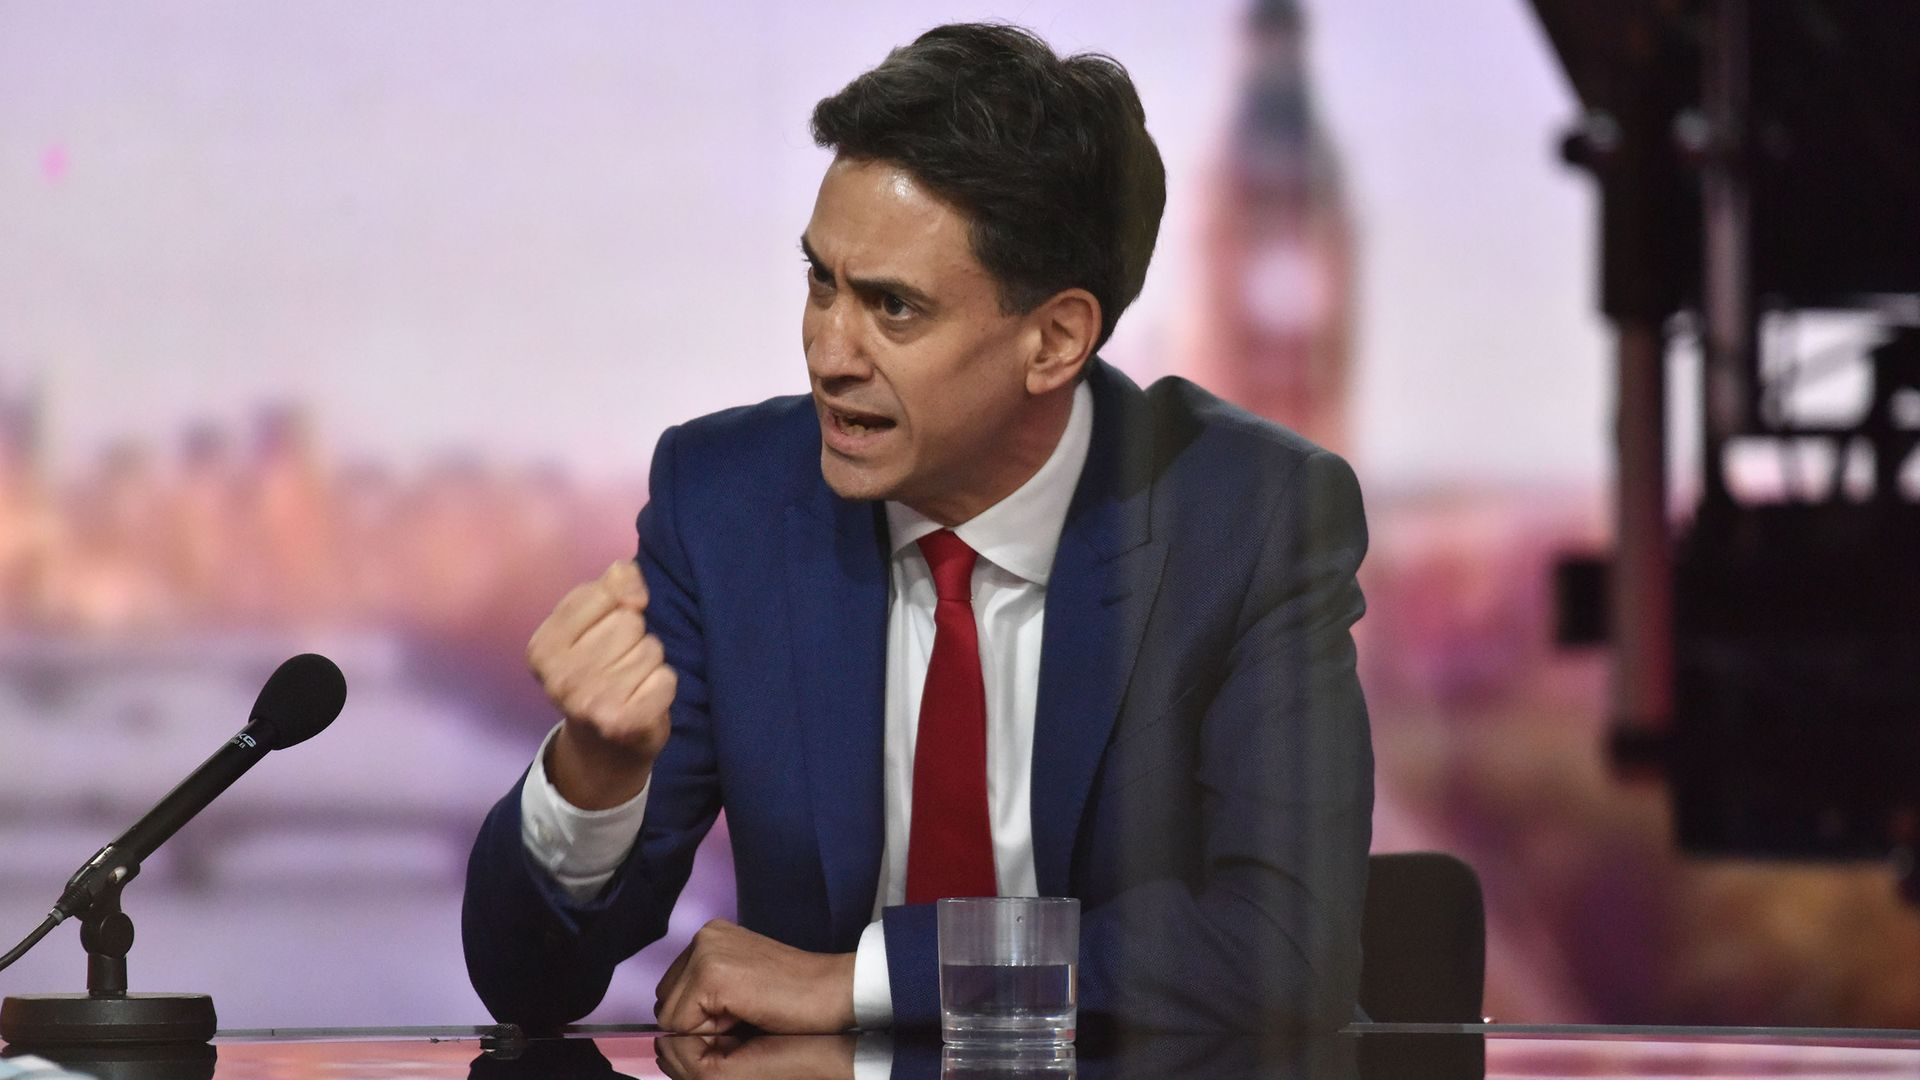 Shadow business secretary Ed Miliband appearing on the BBC1 current affairs programme, The Andrew Marr Show. - Credit: PA